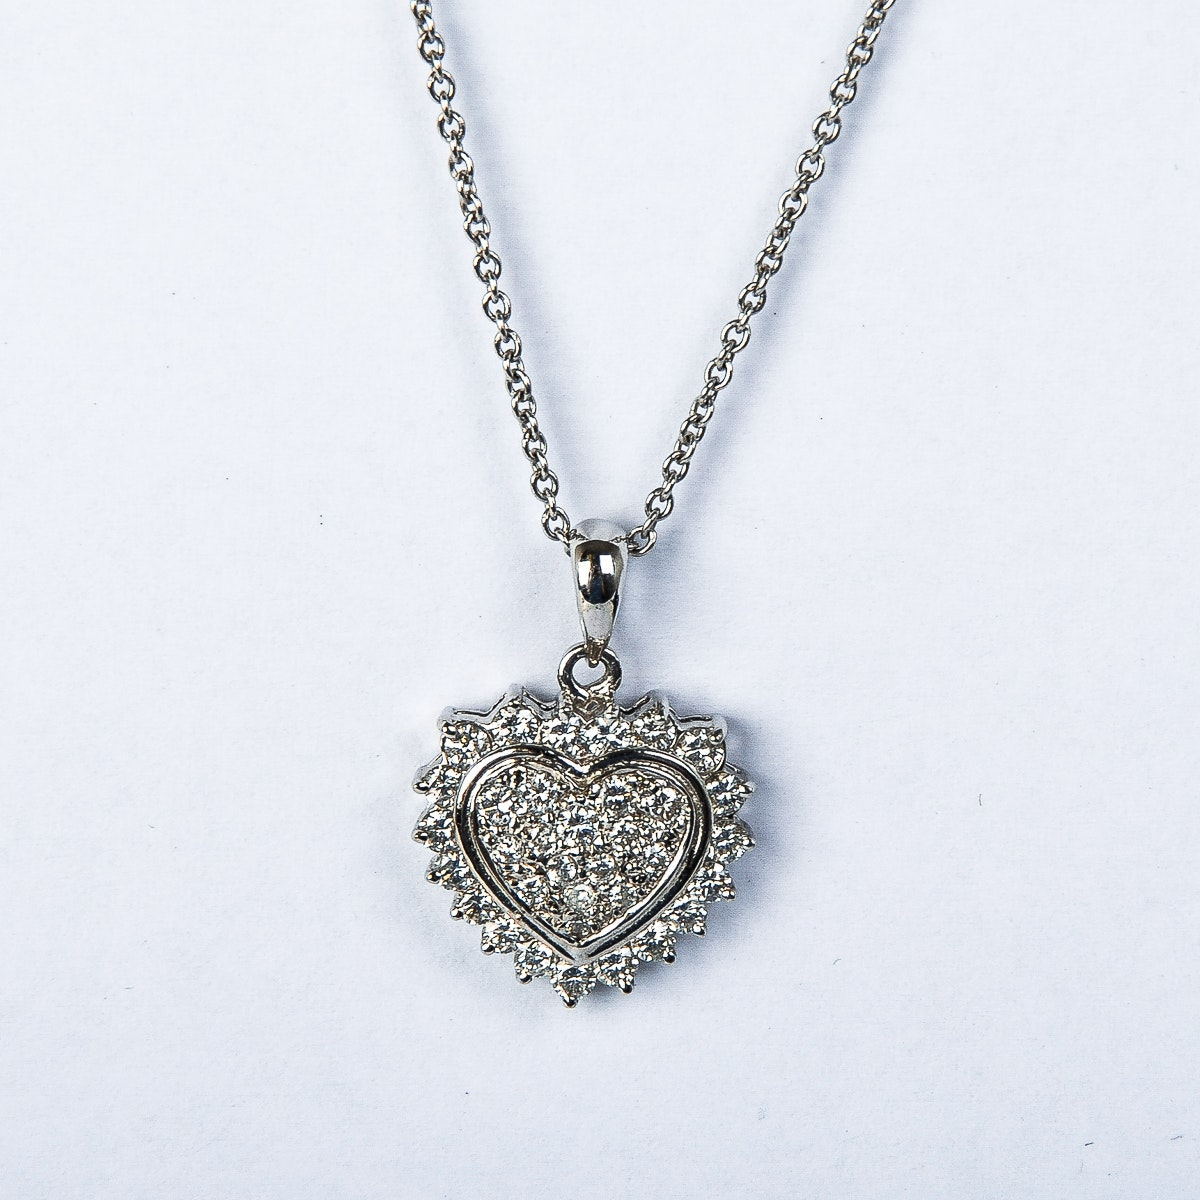 18K White Gold and Diamond Heart Pendant Necklace